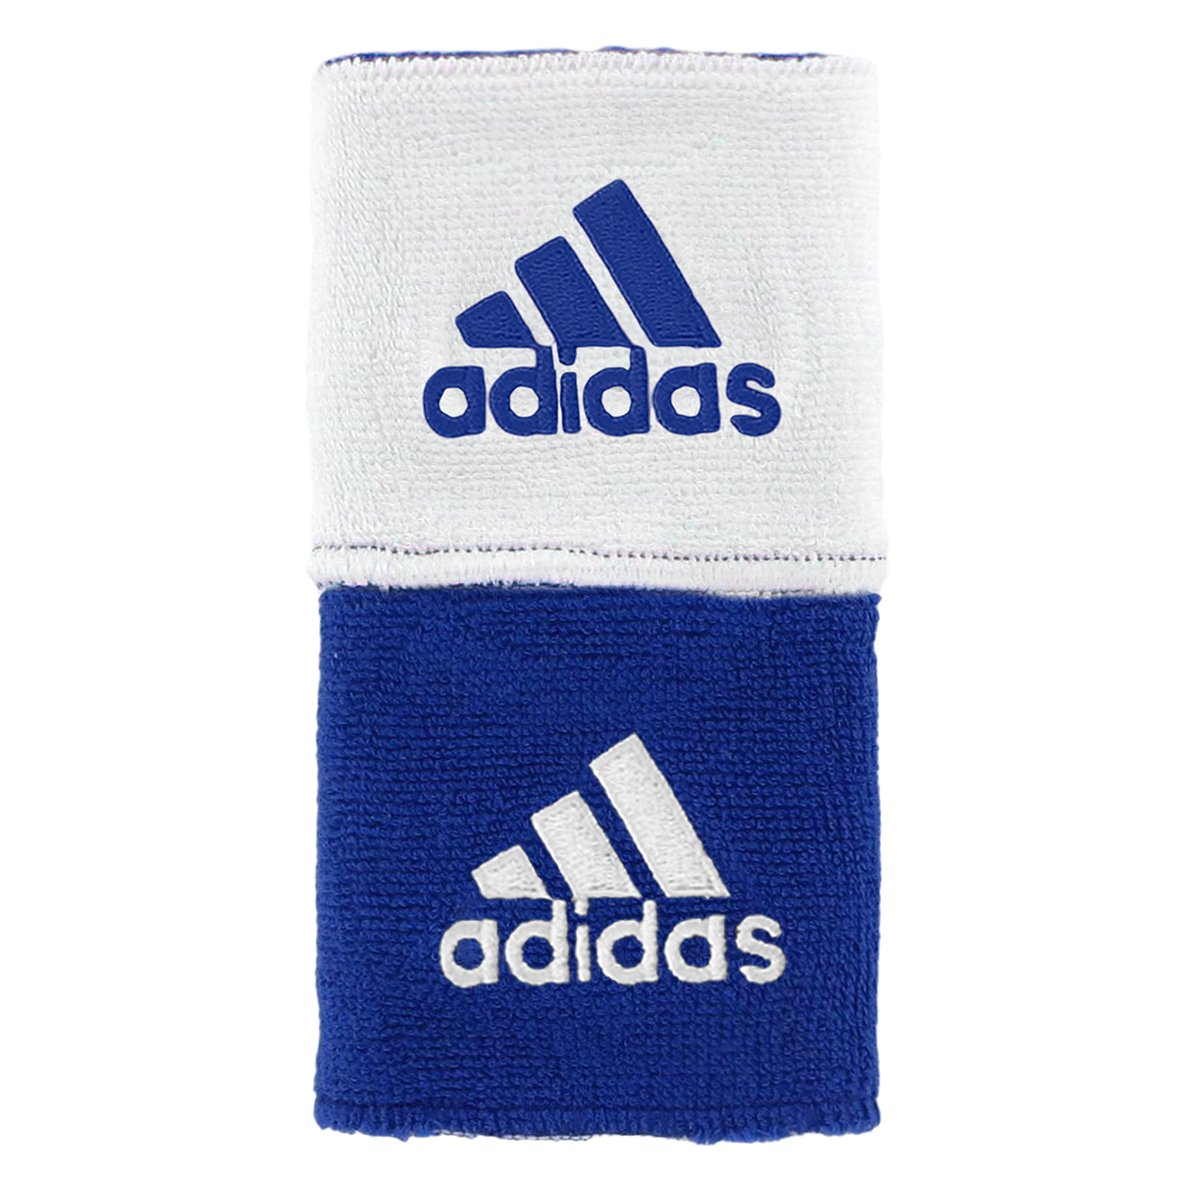 adidas Interval Reversible Wristband, Collegiate Royal/White / White/Collegiate Royal, One Size Fits All